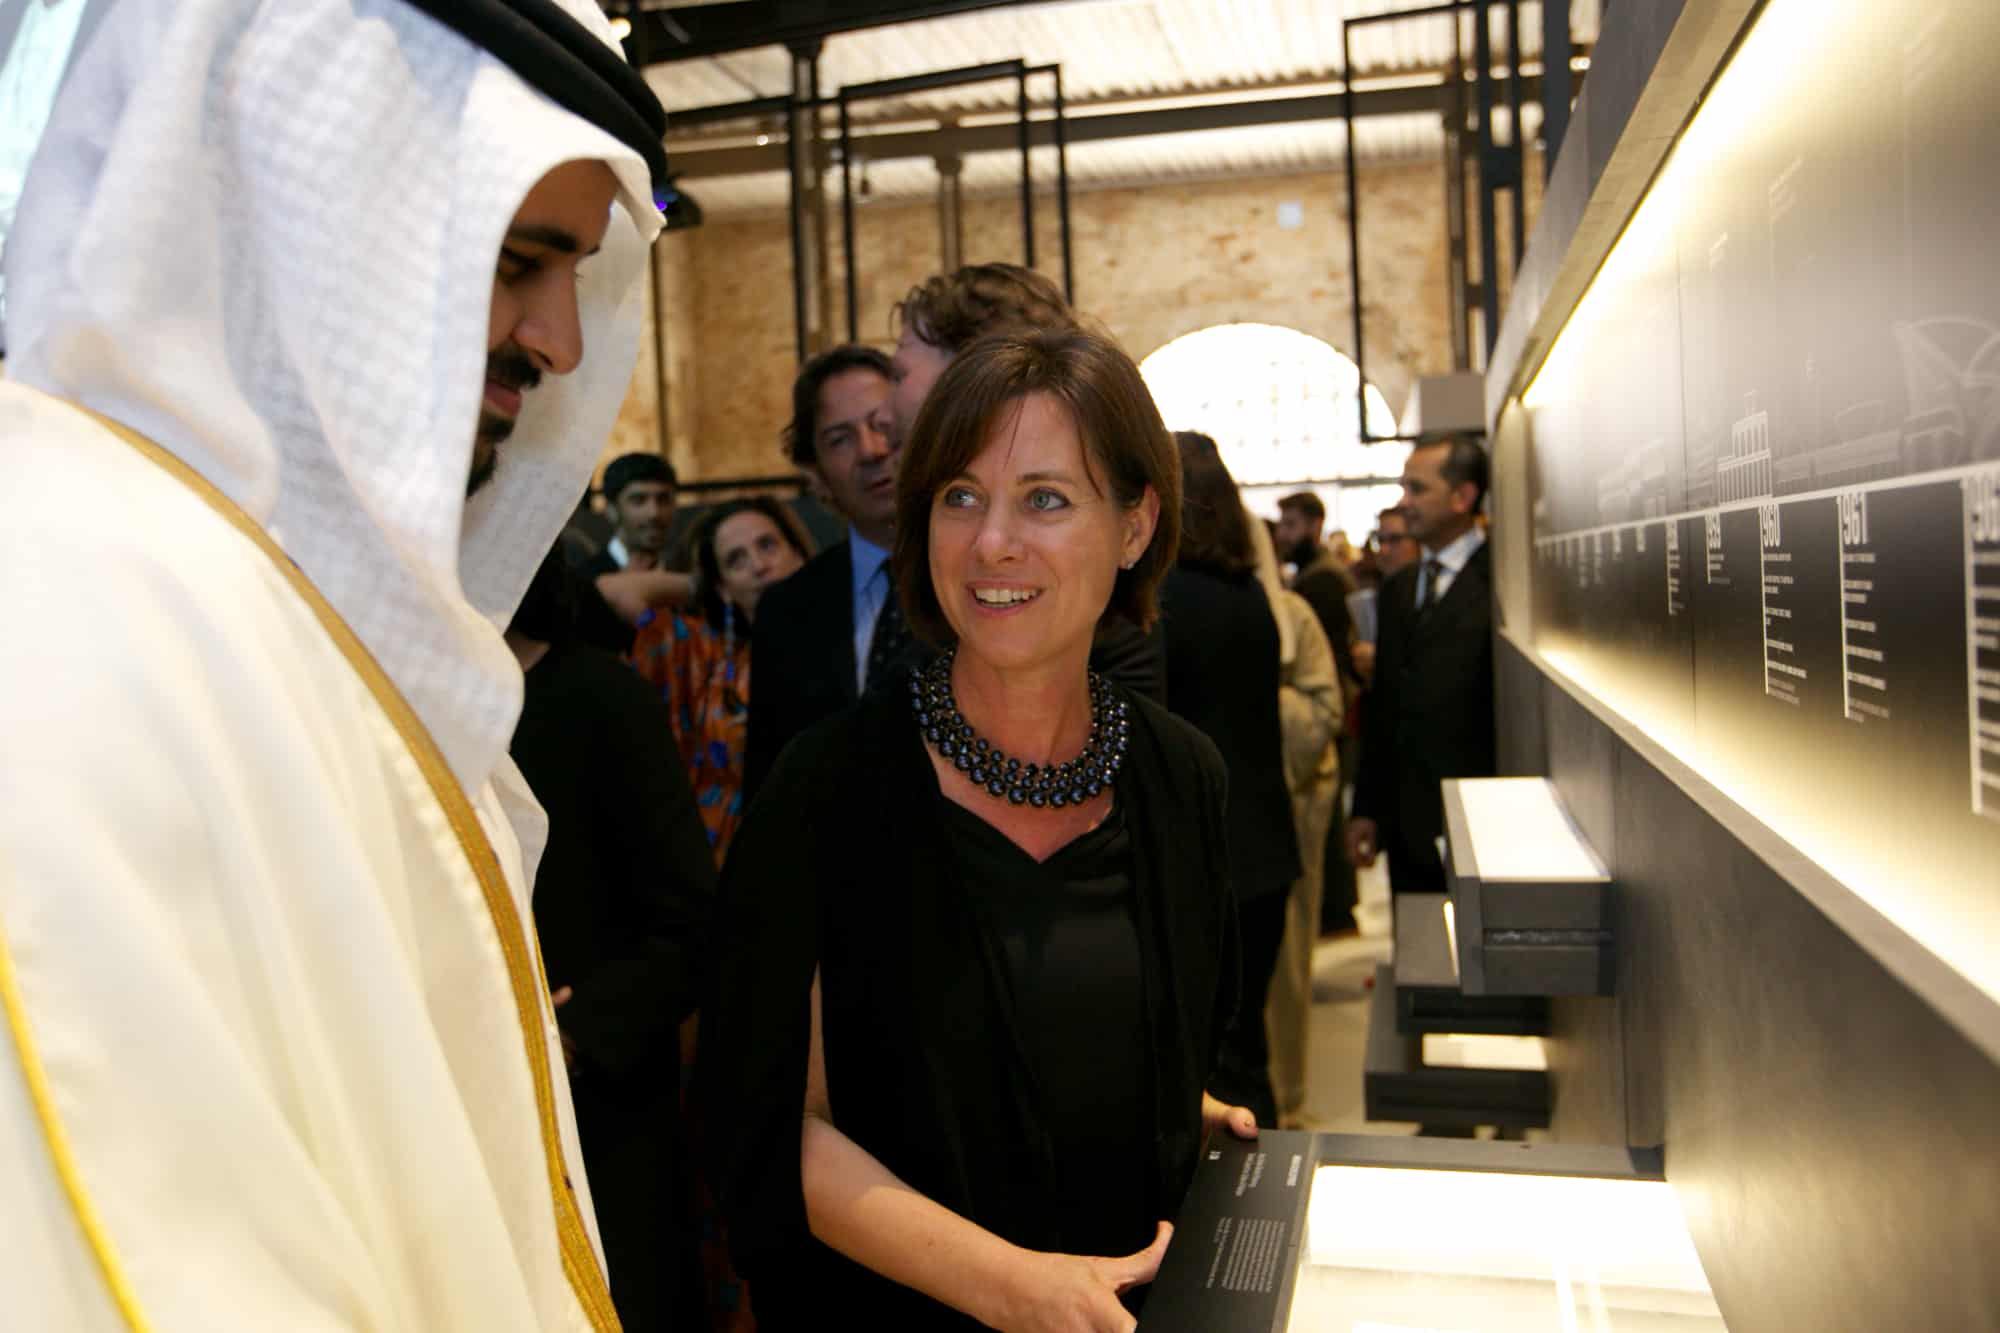 Dr. Michele Bambling, curator of the exhibition walks Sheikh Theyab bin Mohammed Al Nahyan, trustee of the Salama bint Hamdan Al Nahyan Foundation, through the exhibition.